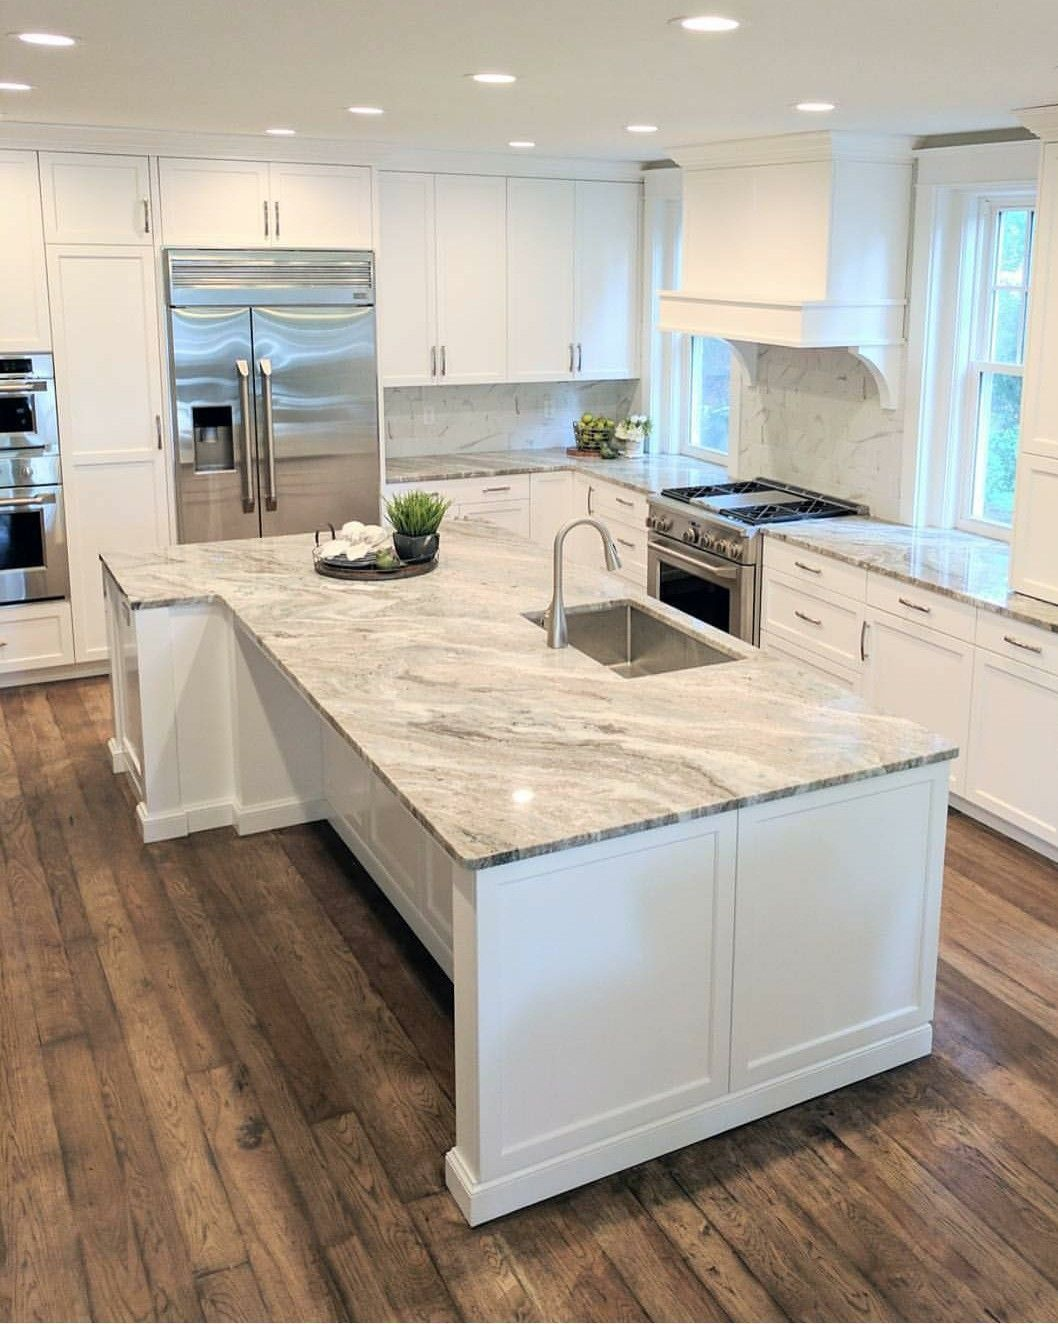 Top 6 Best Kitchen Countertop Designs and Ideas In 2019